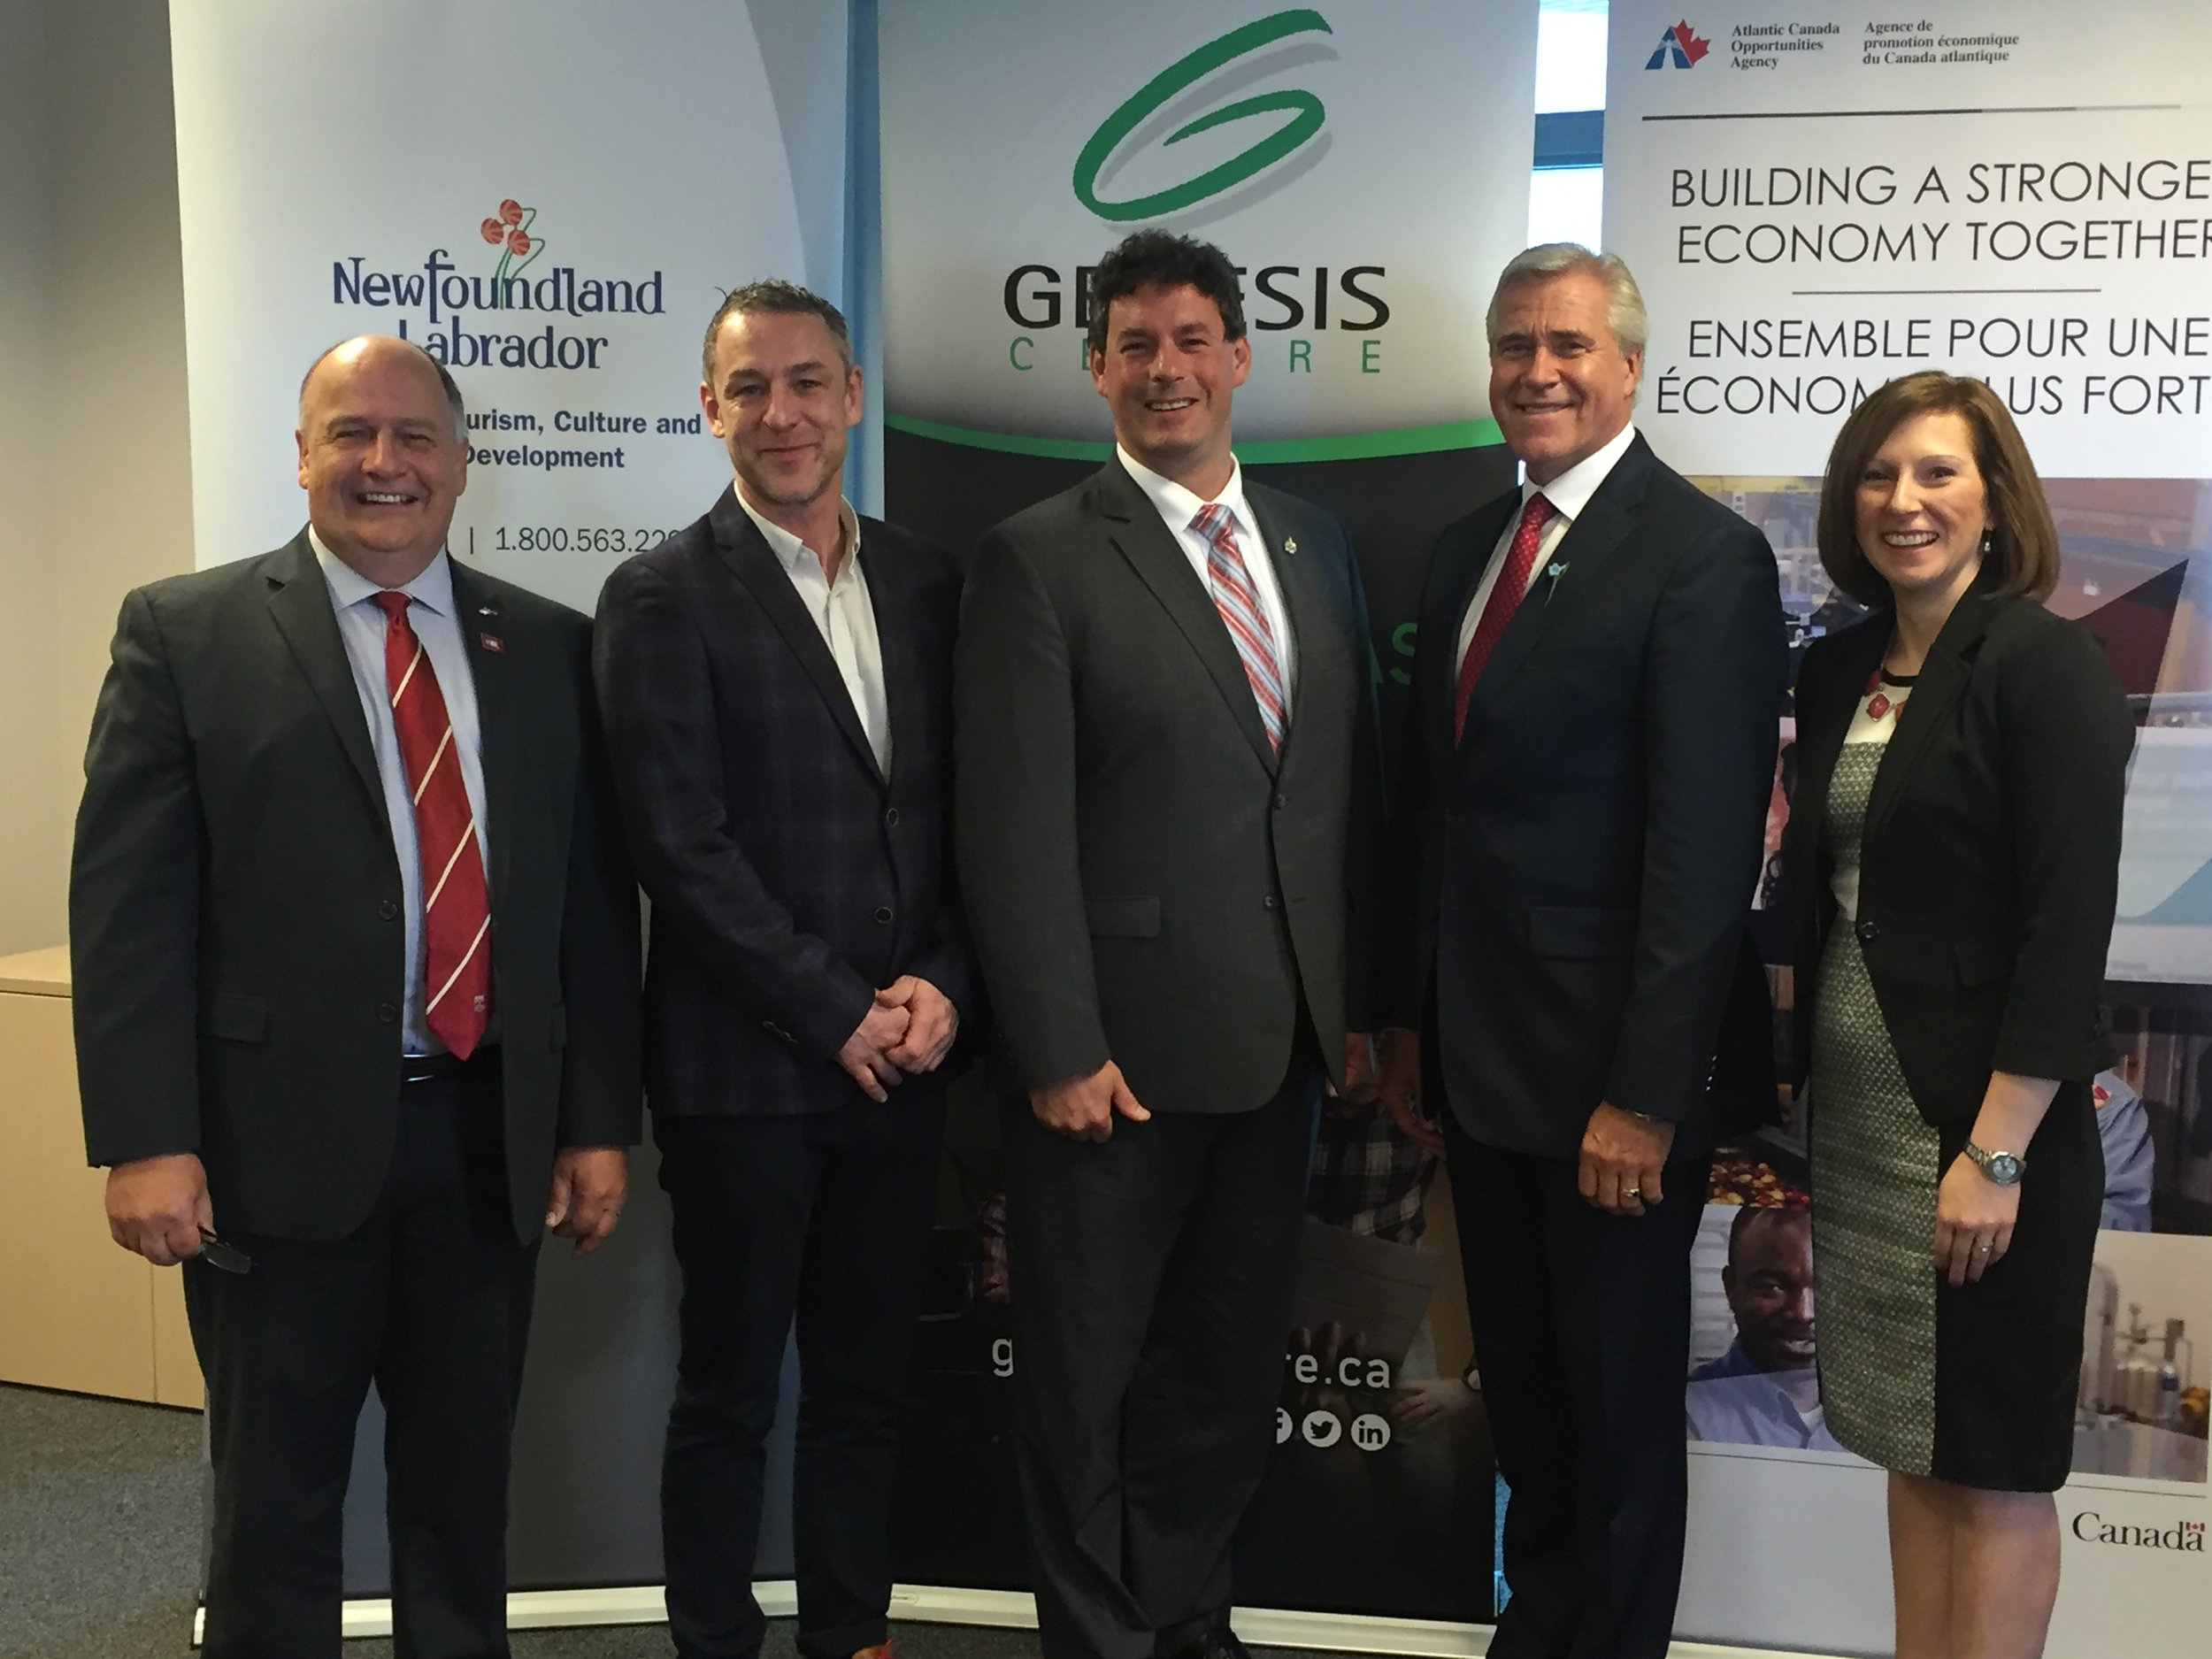 From left: Memorial University President Dr. Gary Kachanoski, Vish CEO Tim Howard, MP Nick Whalen, Premier Dwight Ball, Genesis Centre President and CEO Michelle Simms. Photo credits to Anna Collis.